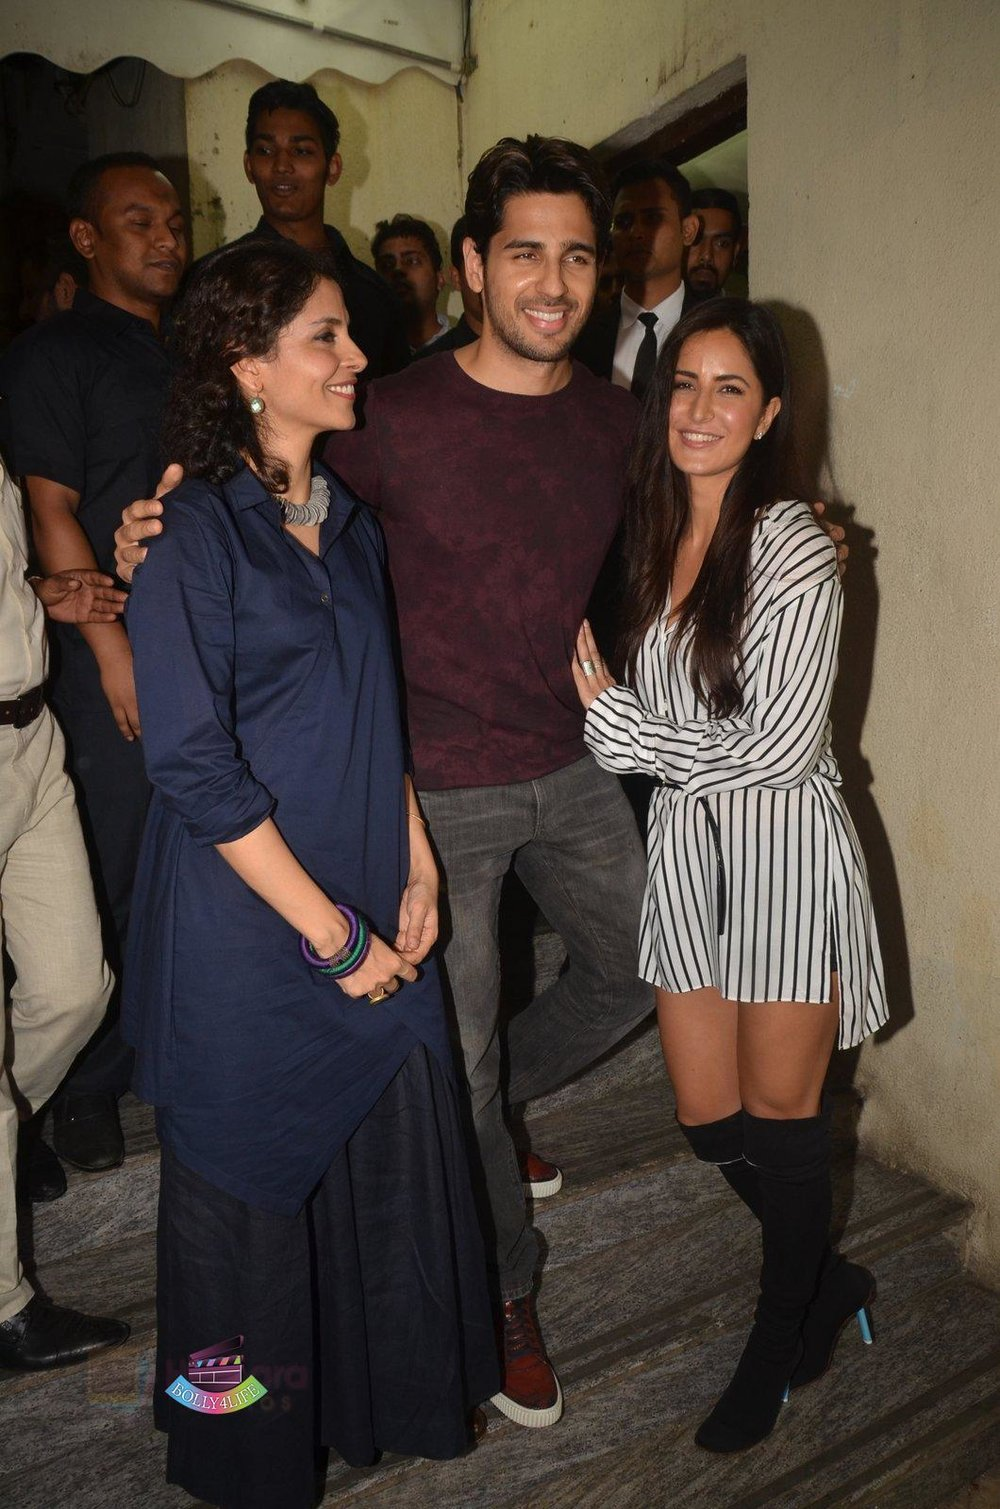 Sidharth-Malhotra-Katrina-Kaif-at-Baar-Baar-Dekho-Screening-on-8th-Sept-2016-116.jpg